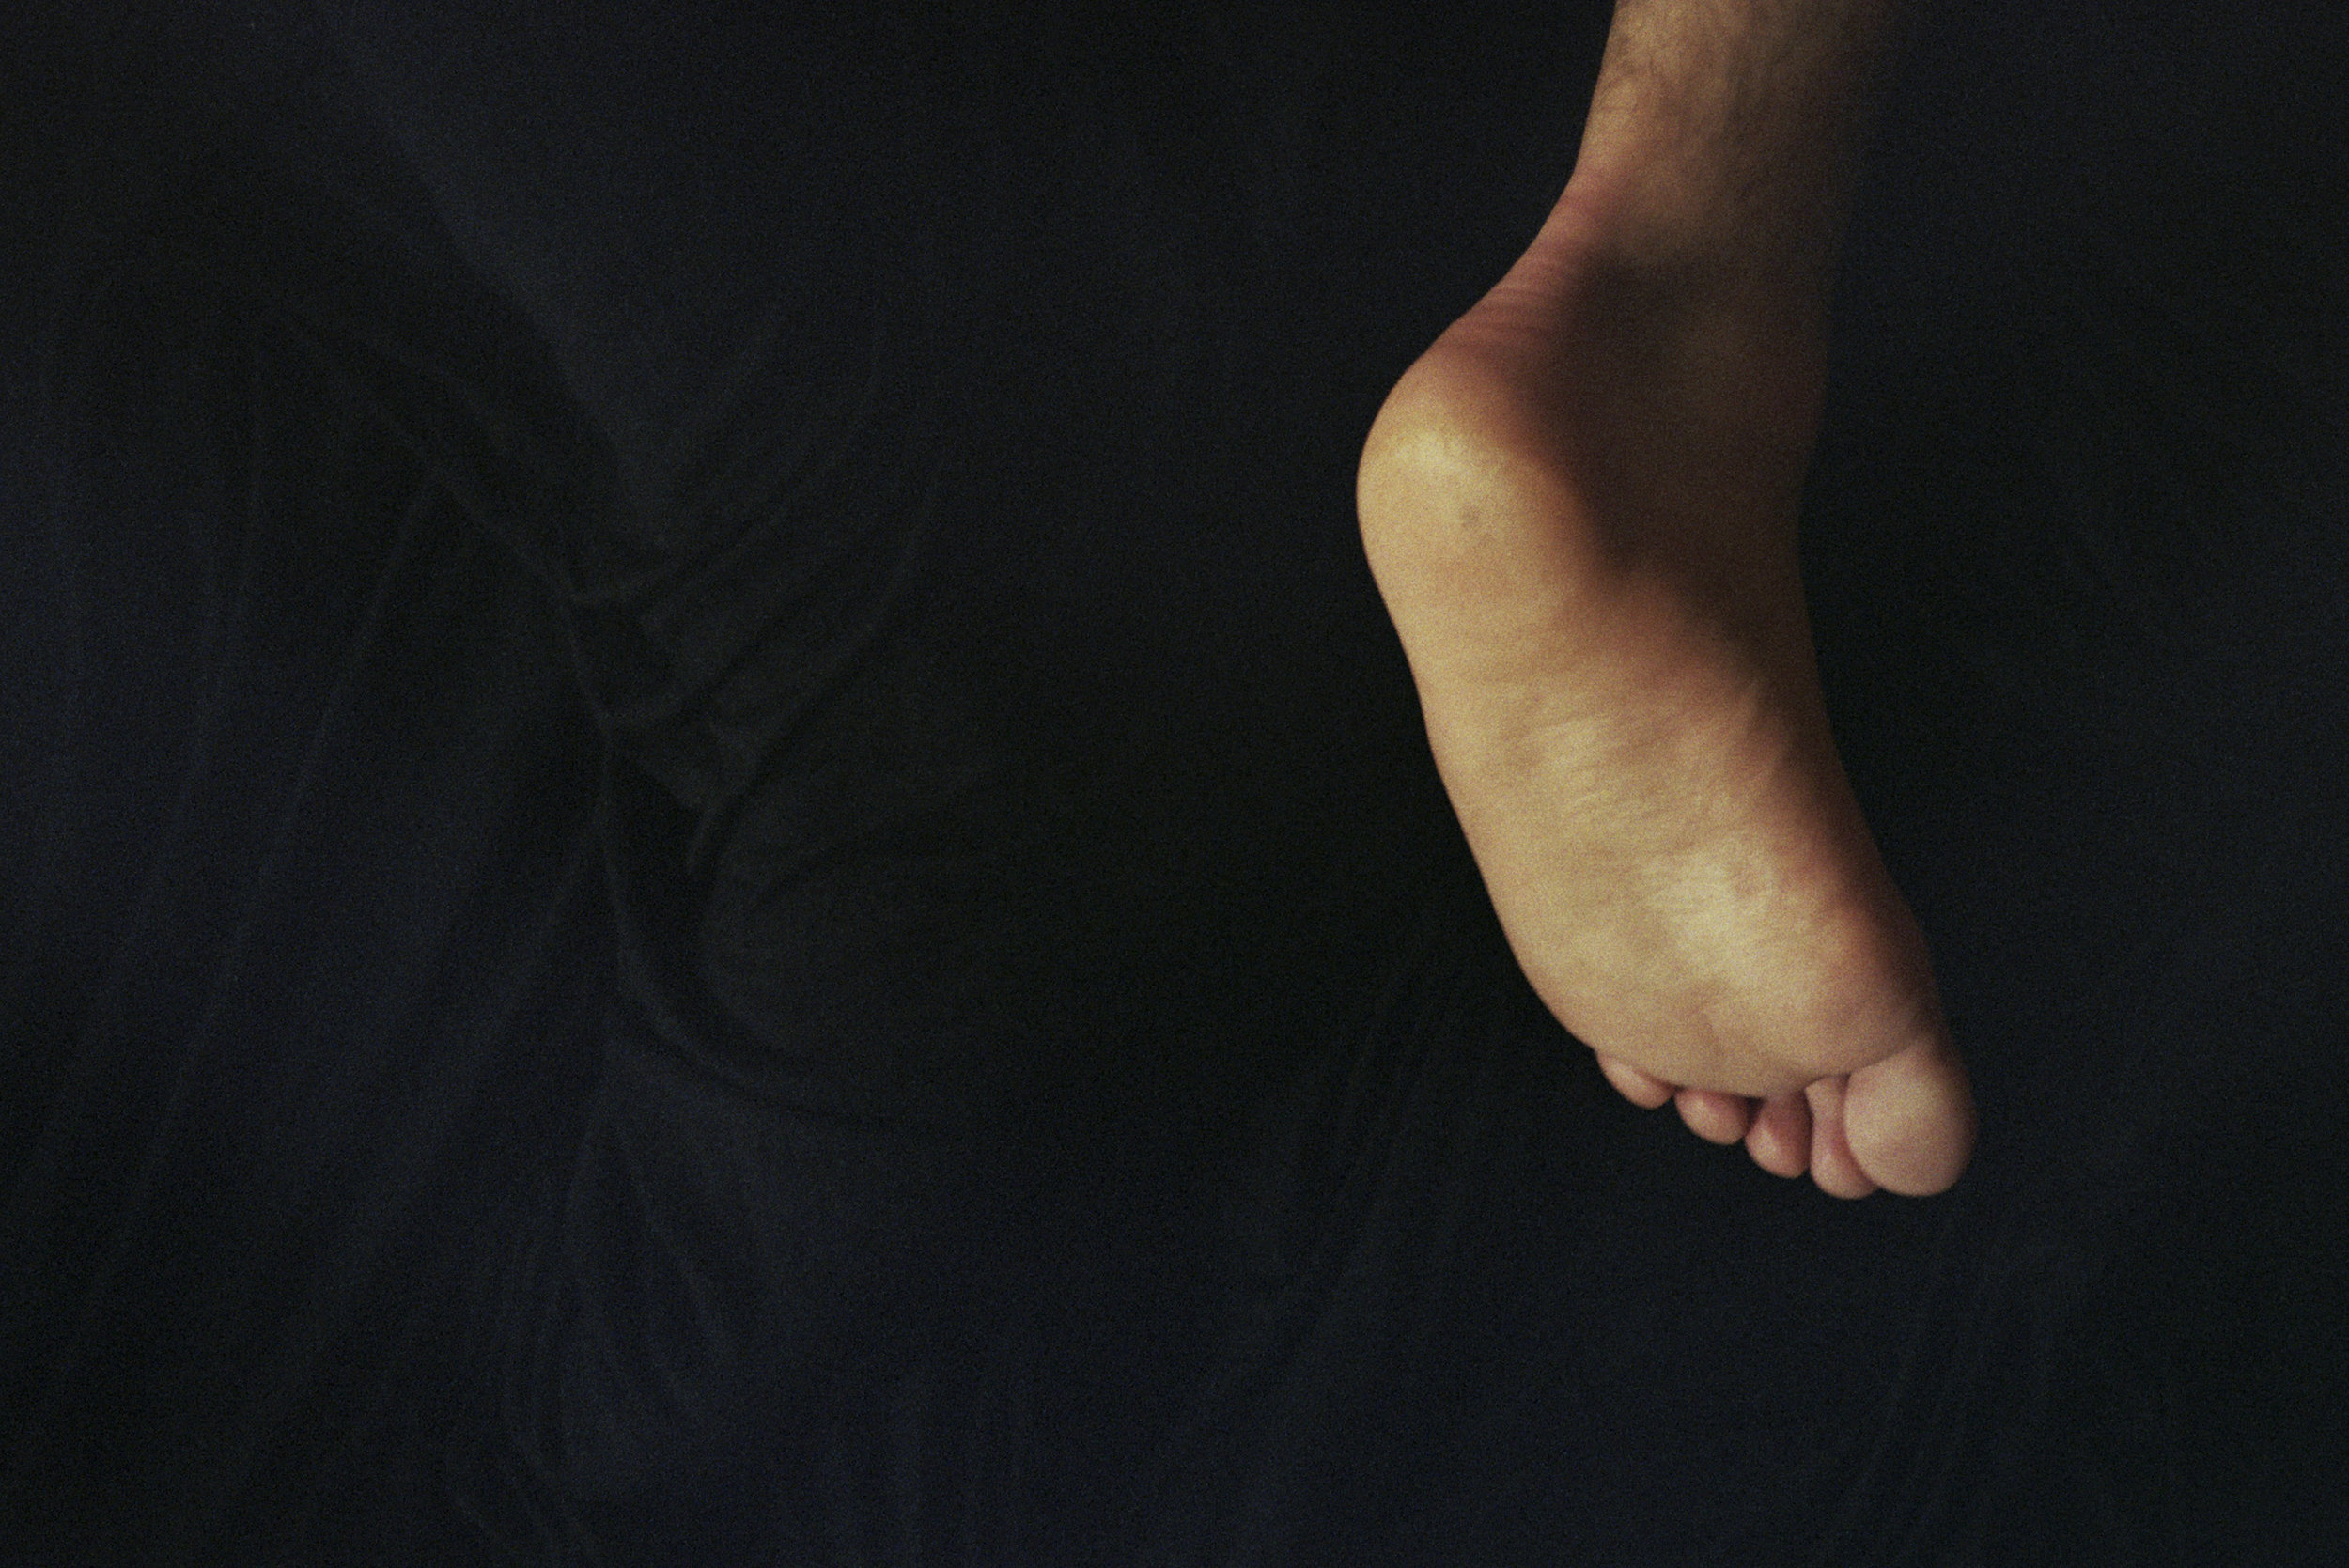 Gio's Foot, Brooklyn, 2013